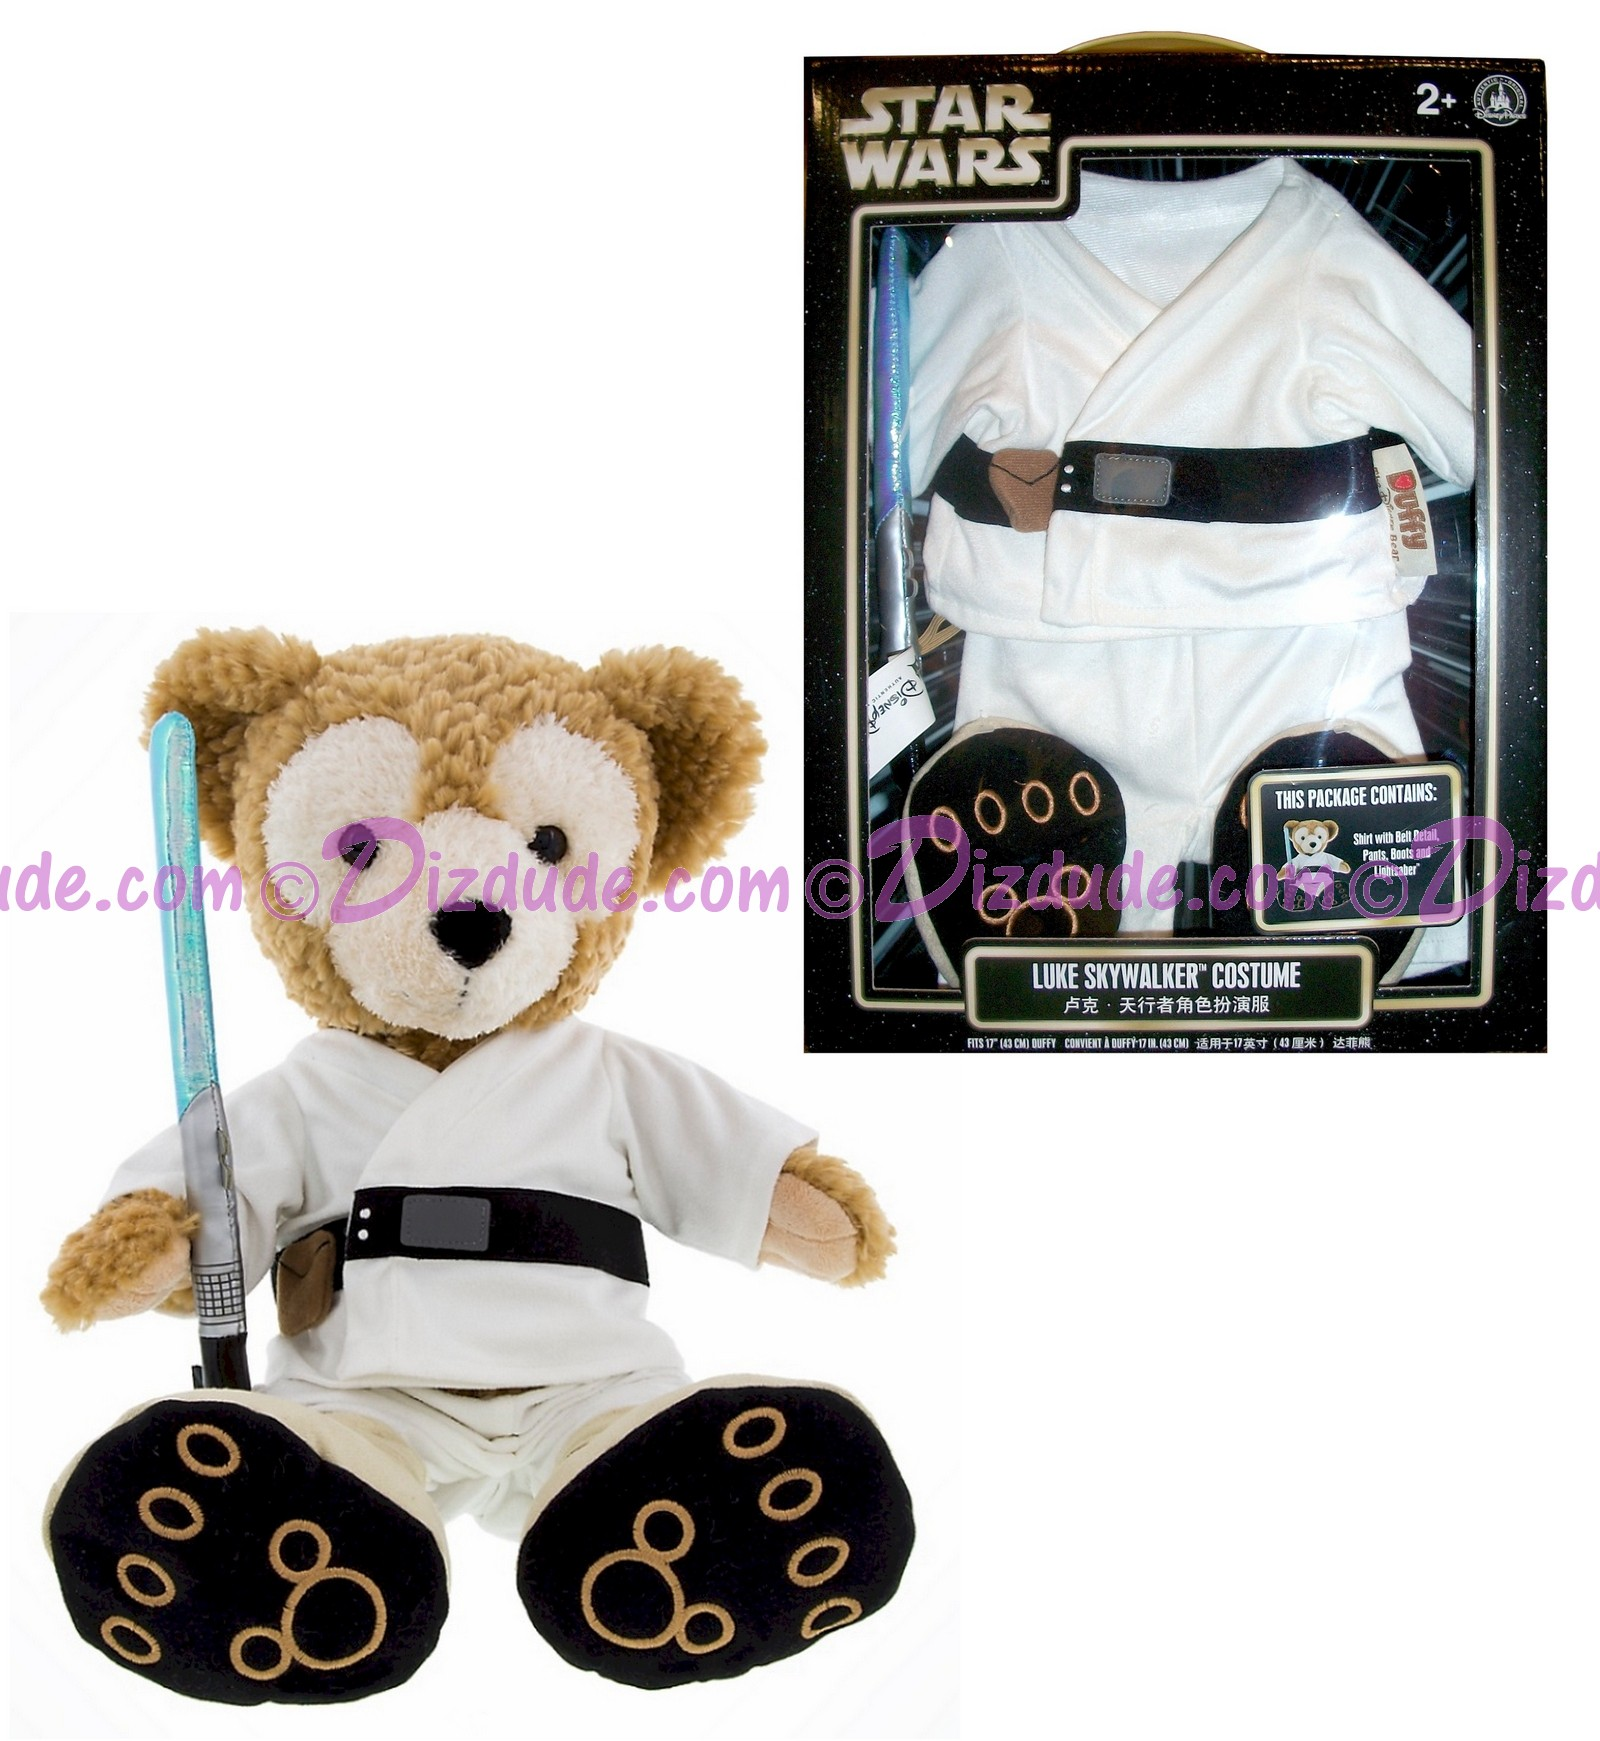 Duffy The Disney Bear - Star Wars Luke Skywalker Costume for 17 inch Plush © Dizdude.com